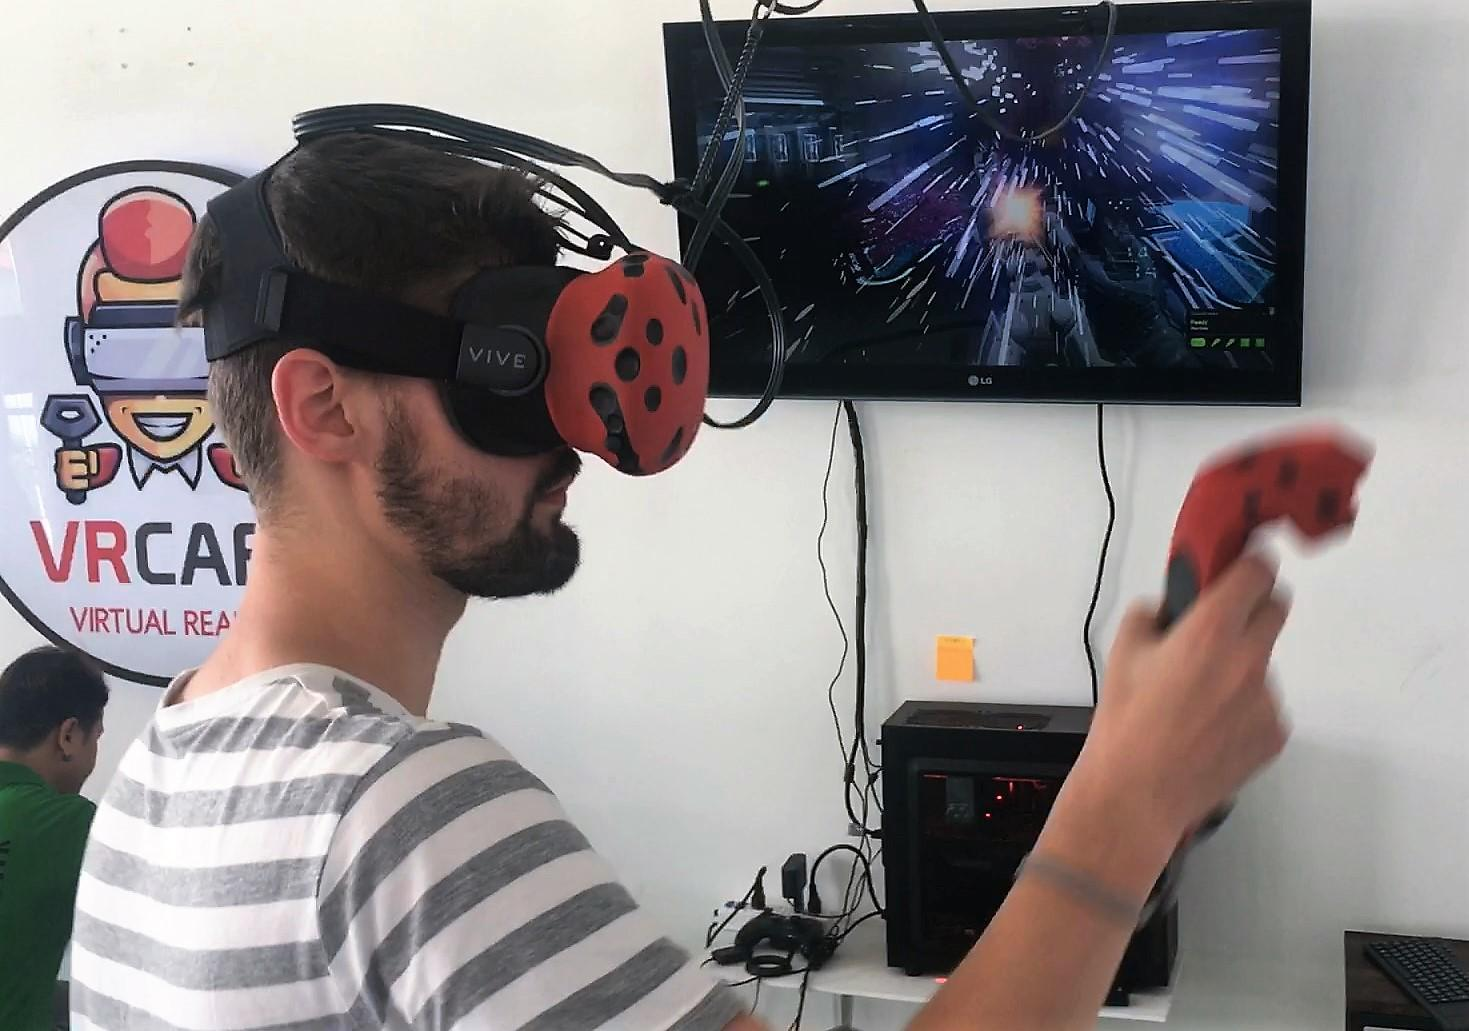 Die Planke ins Nichts: Virtual Reality in Chiang Mai